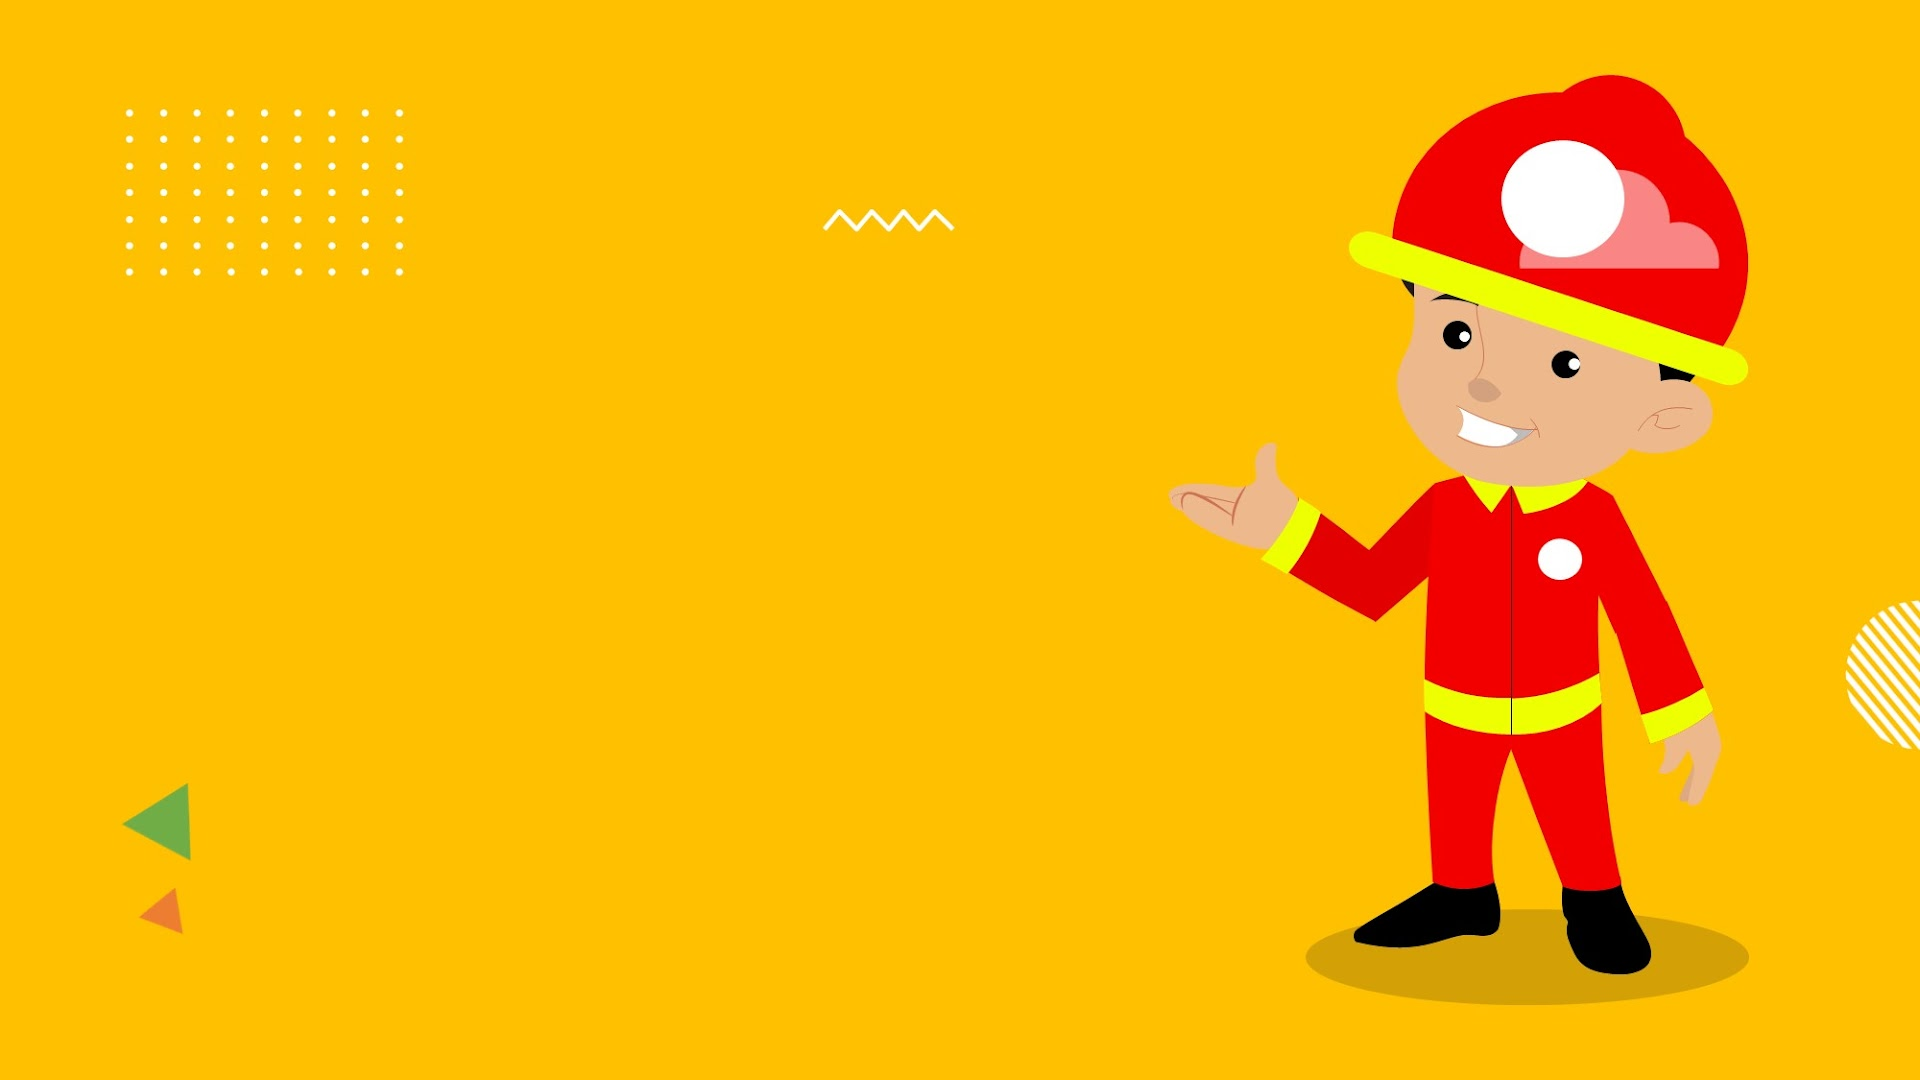 Cartoon Fire Fighter Background for Google Slides Themes